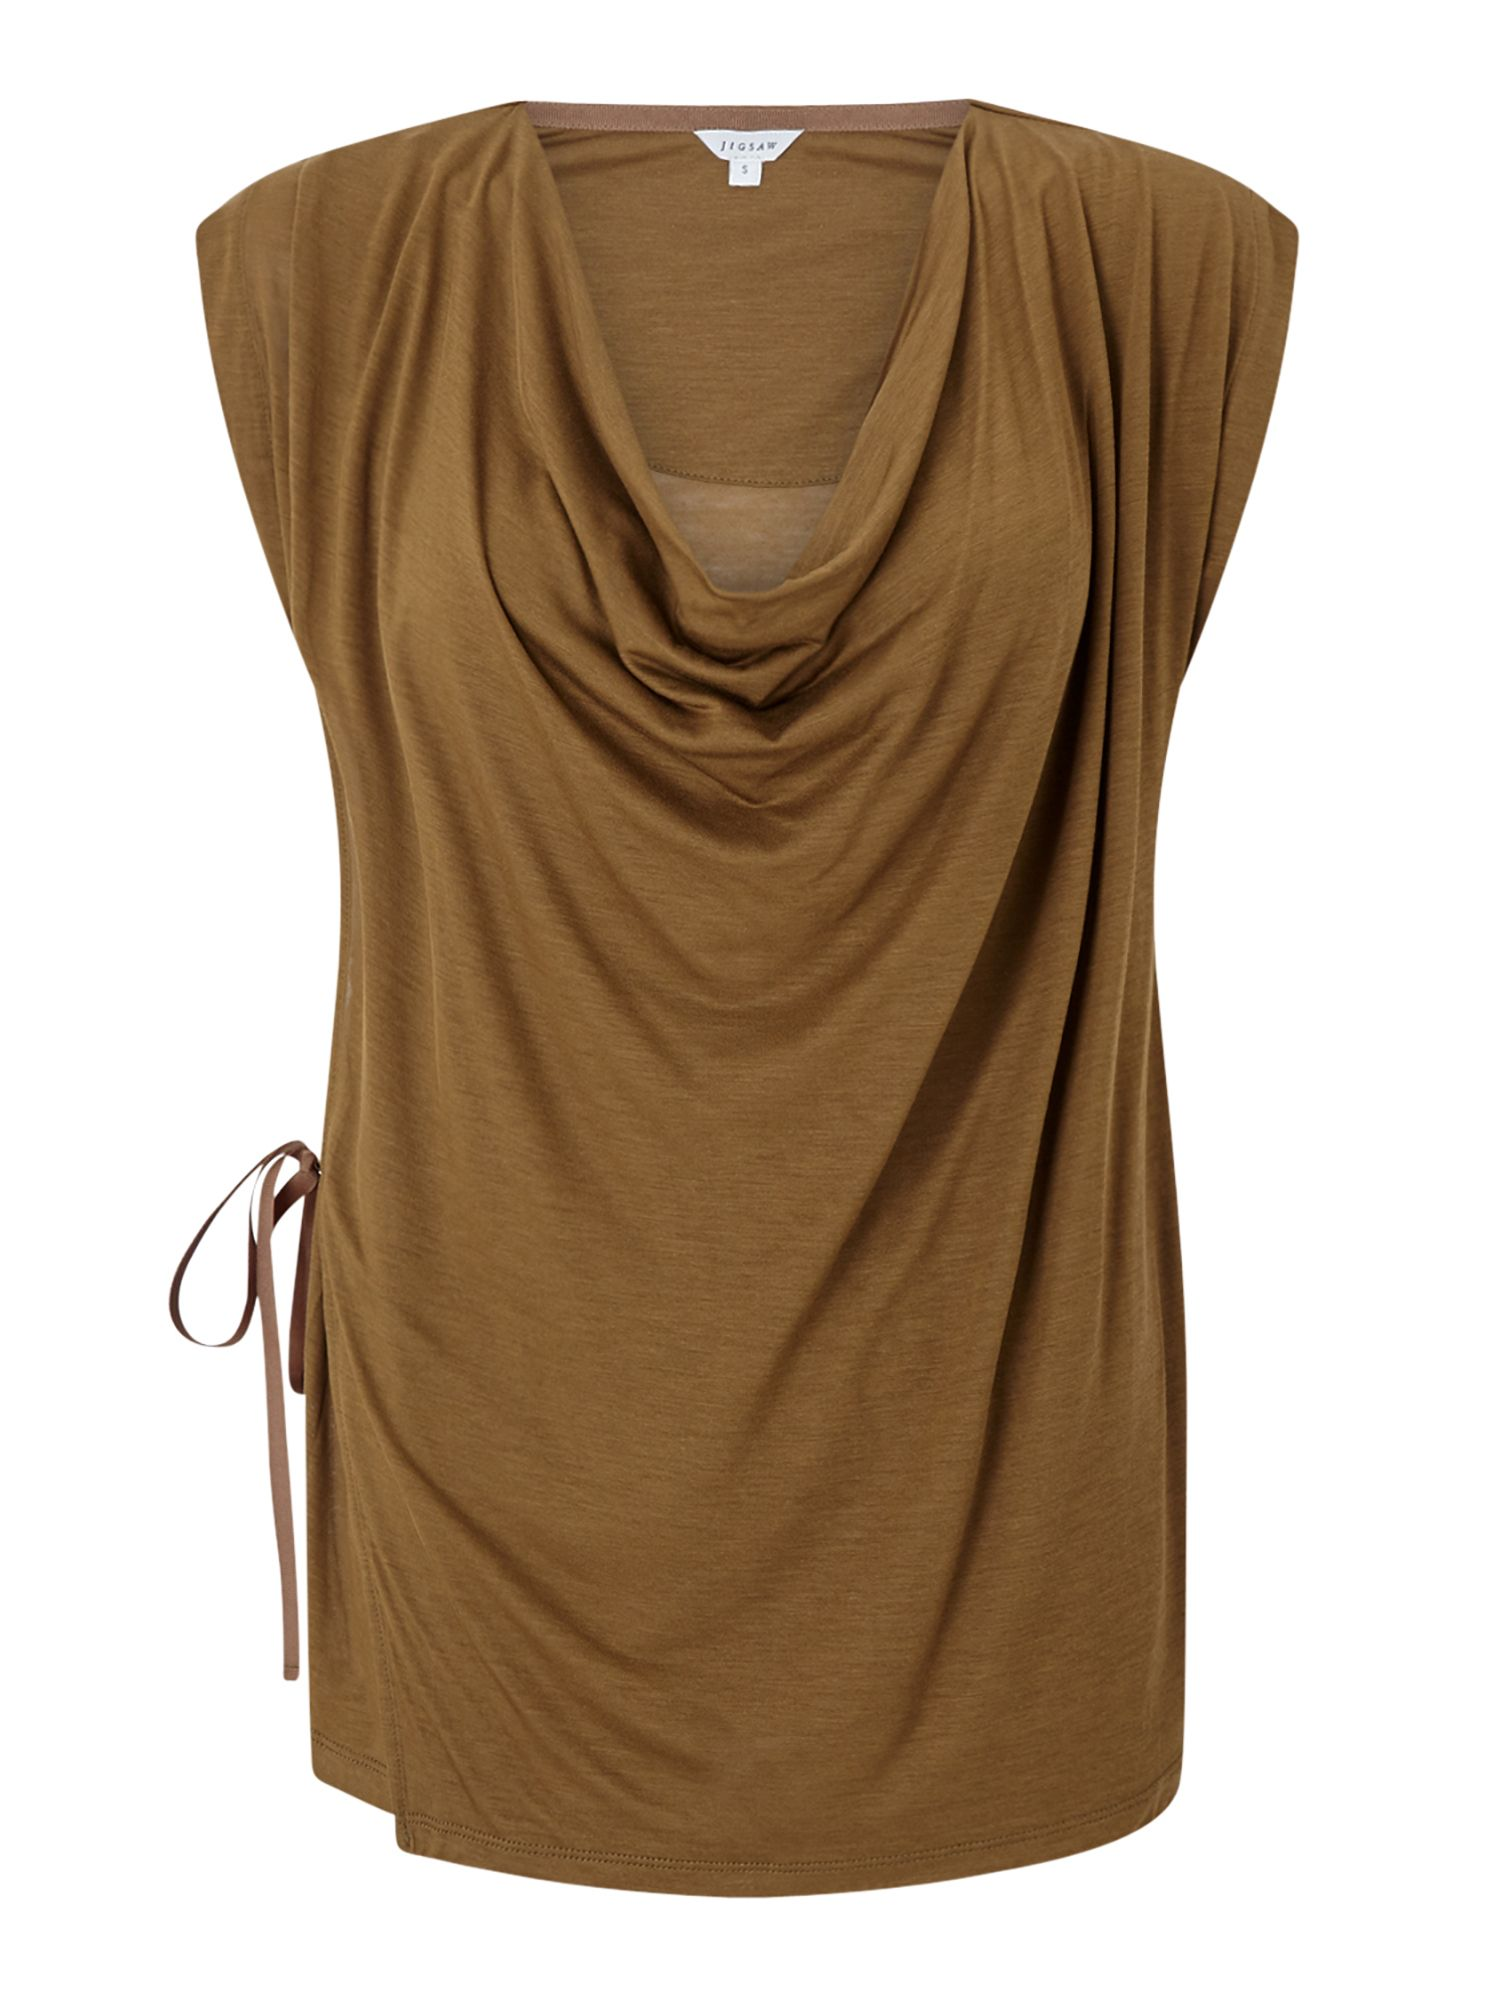 Jigsaw Sleeveless Cowl Neck Top, Khaki